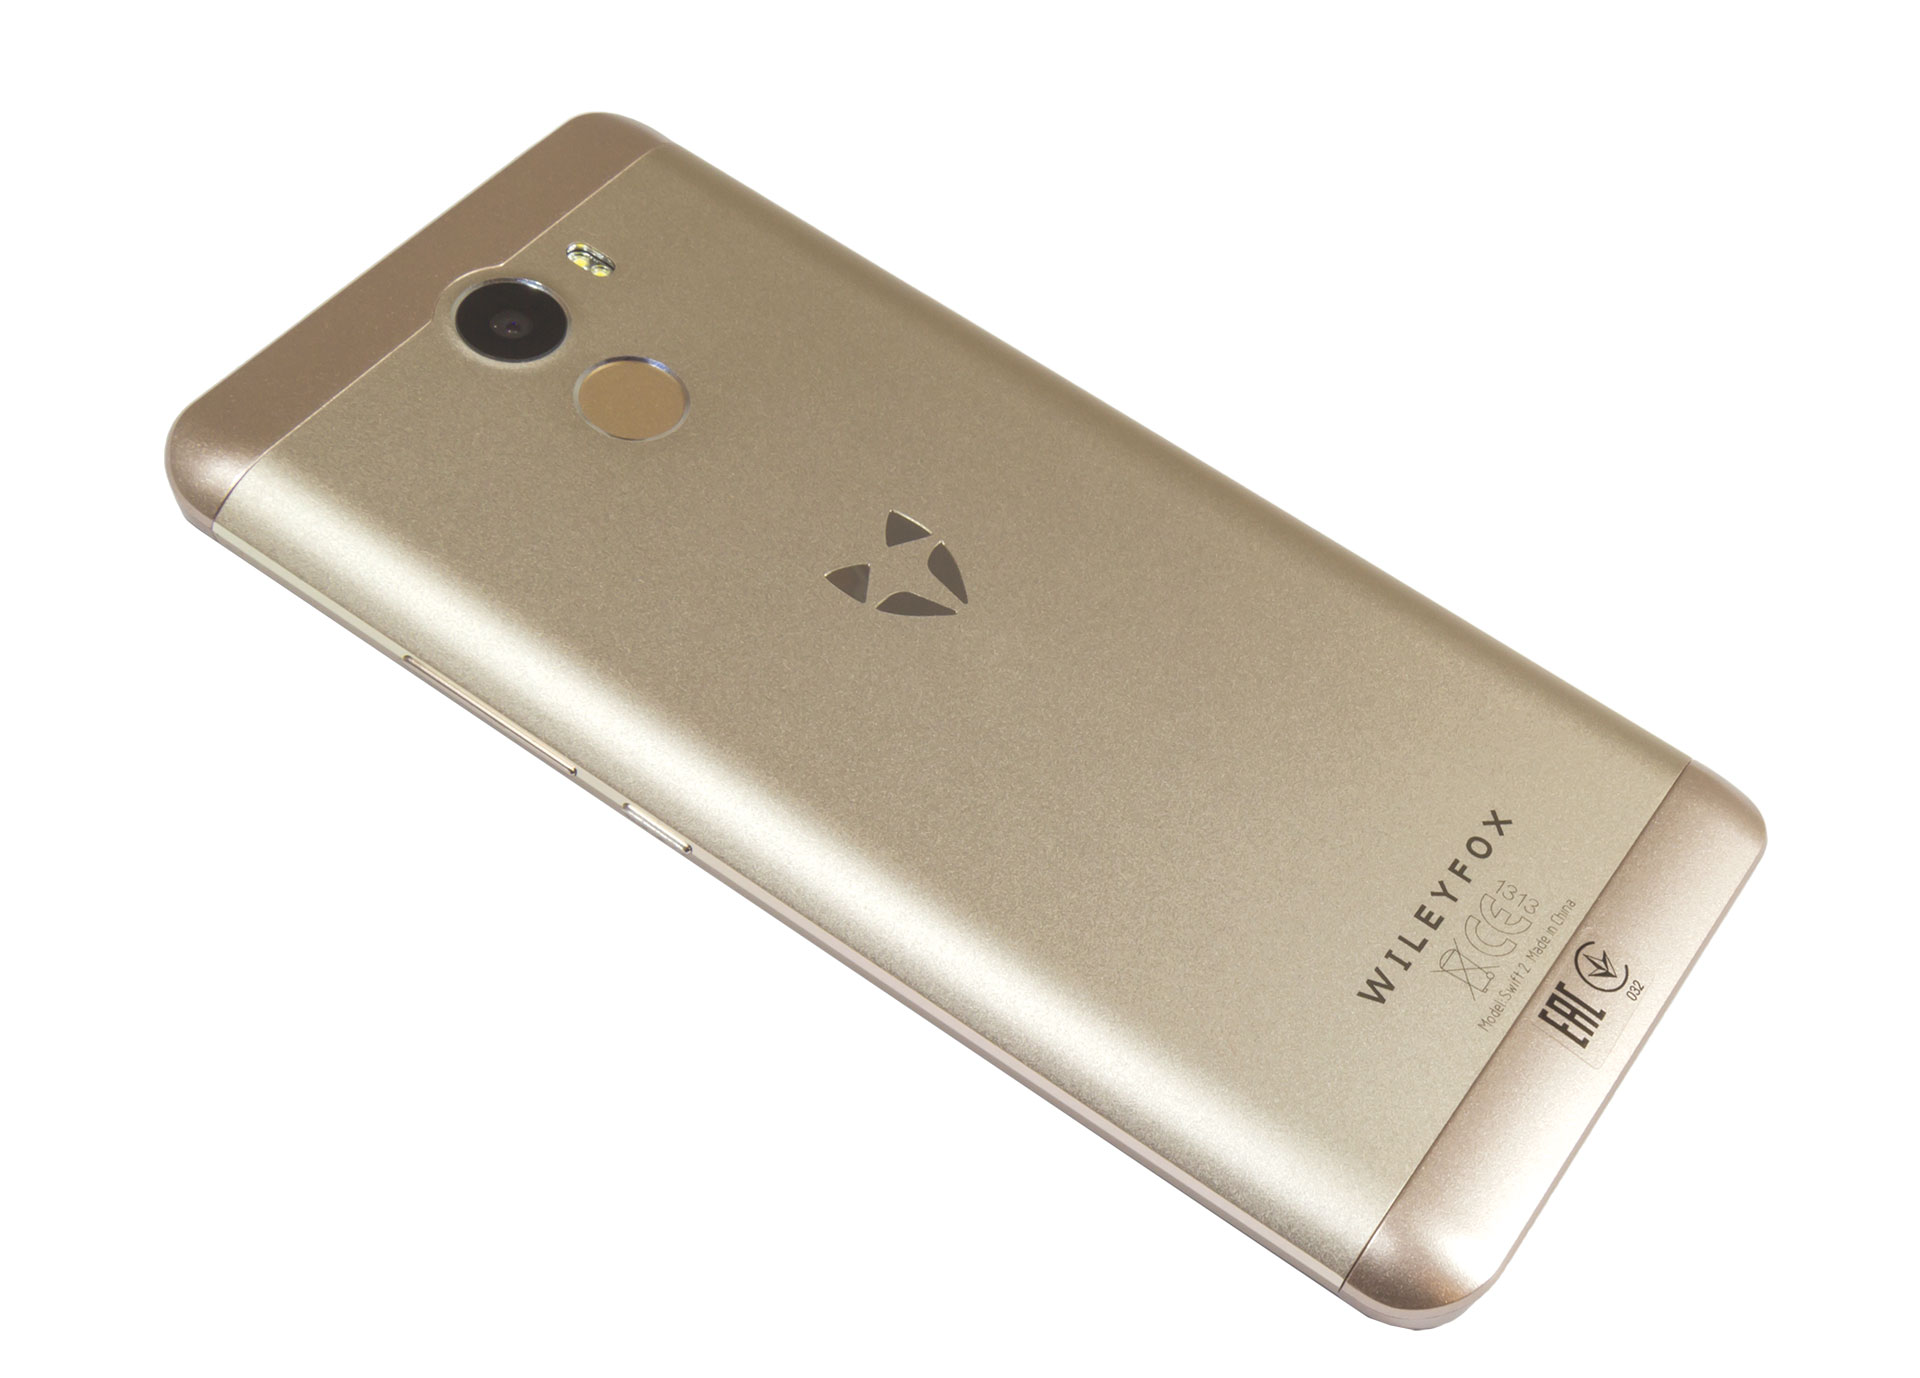 Wileyfox Swift 2 4